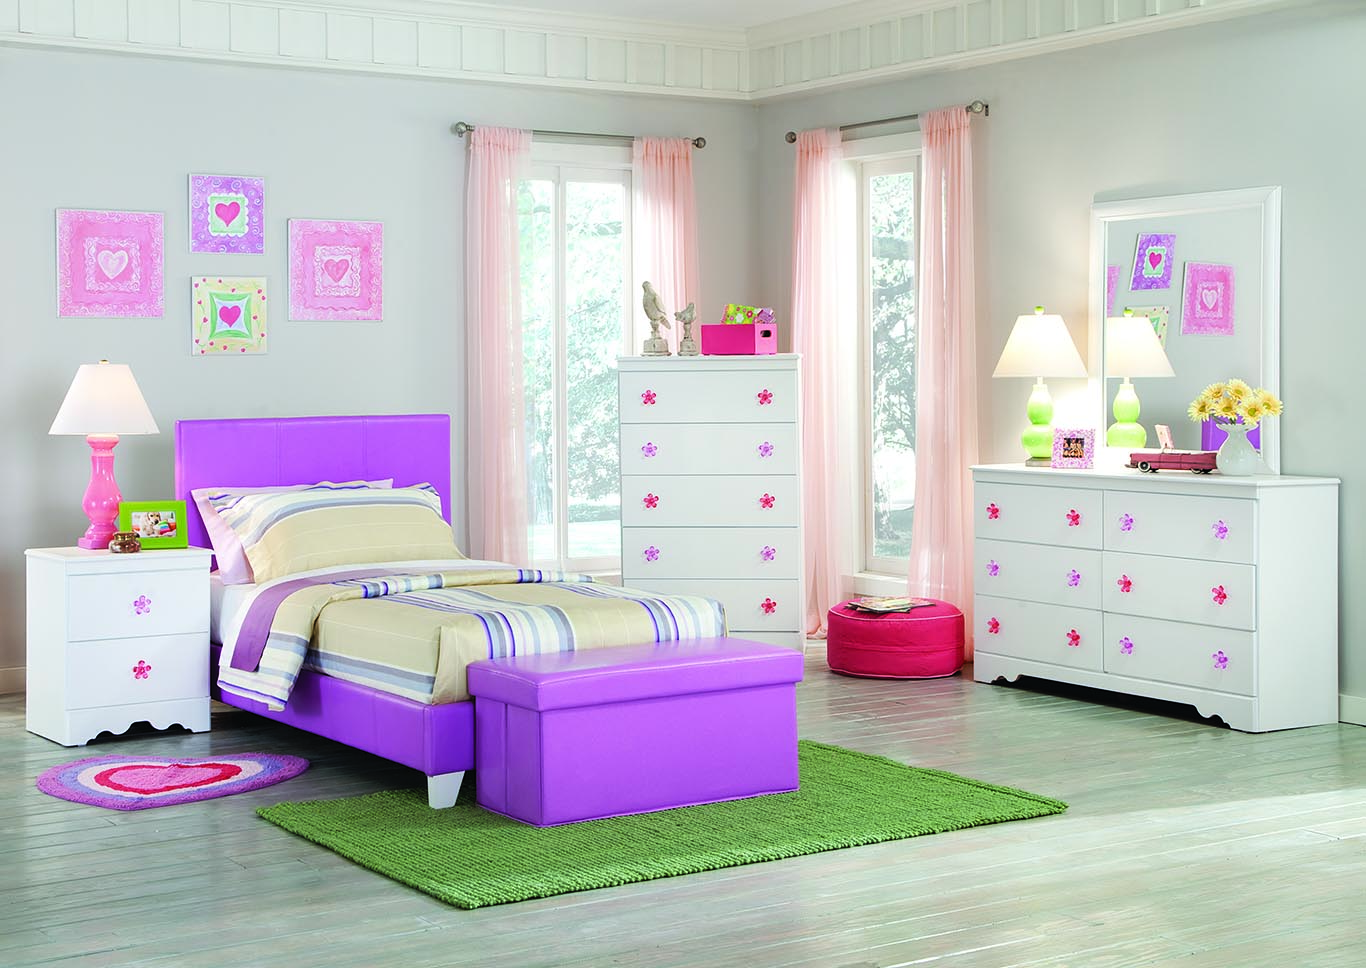 Savannah Lavender Twin Bed,Kith